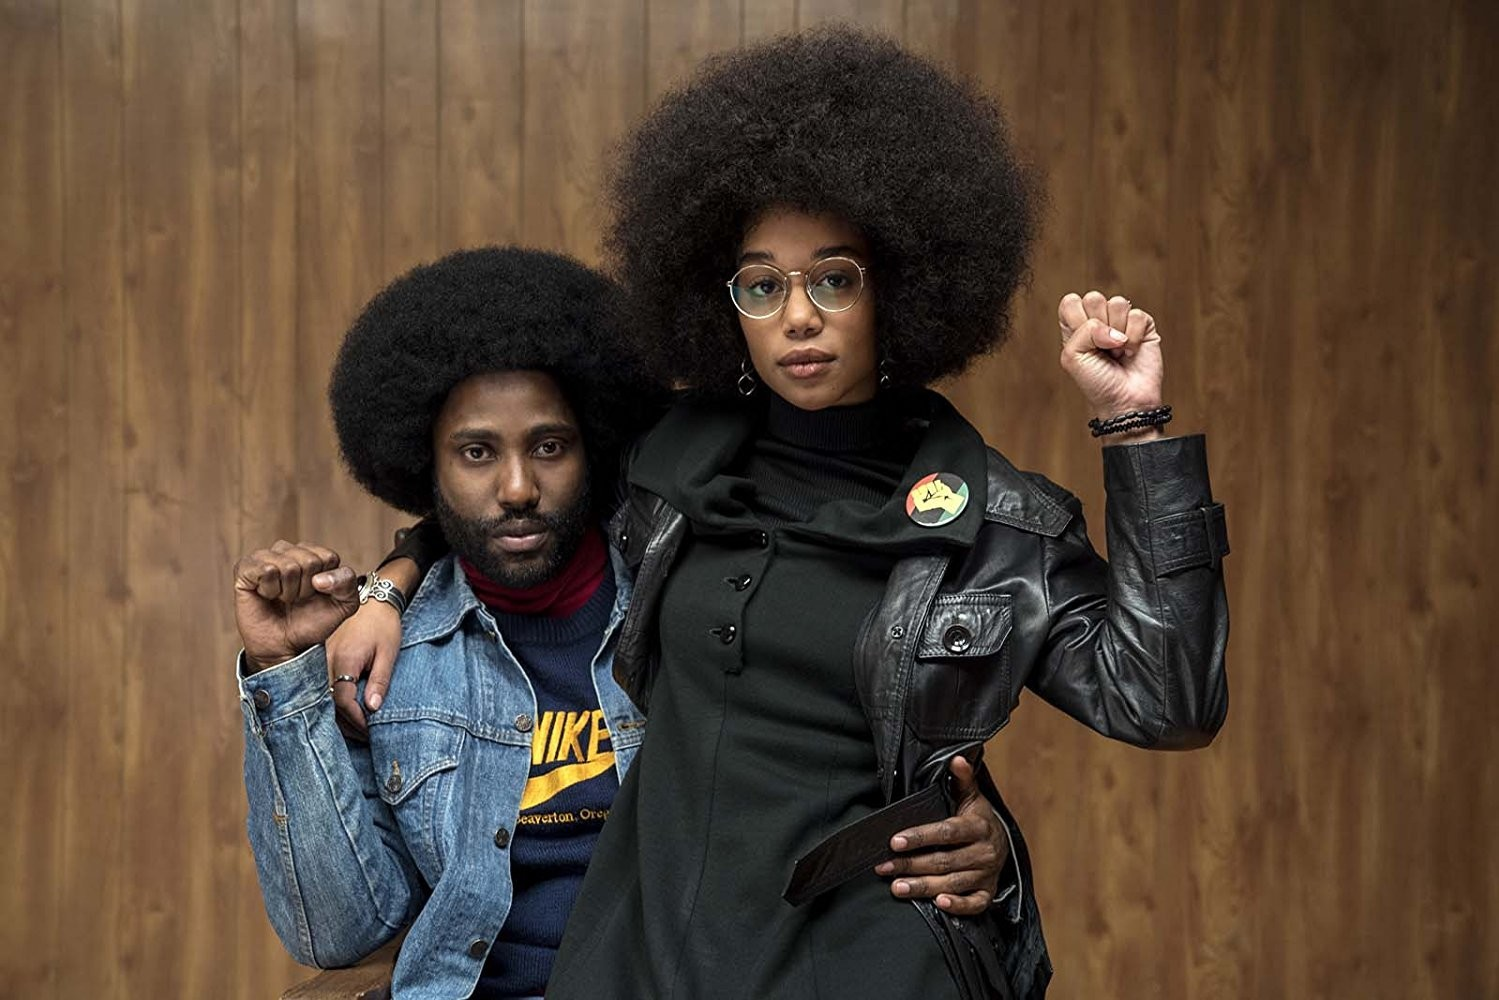 Spike Lee's 'BlacKkKlansman' Is Audacious, Offensive, Essential Moviemaking